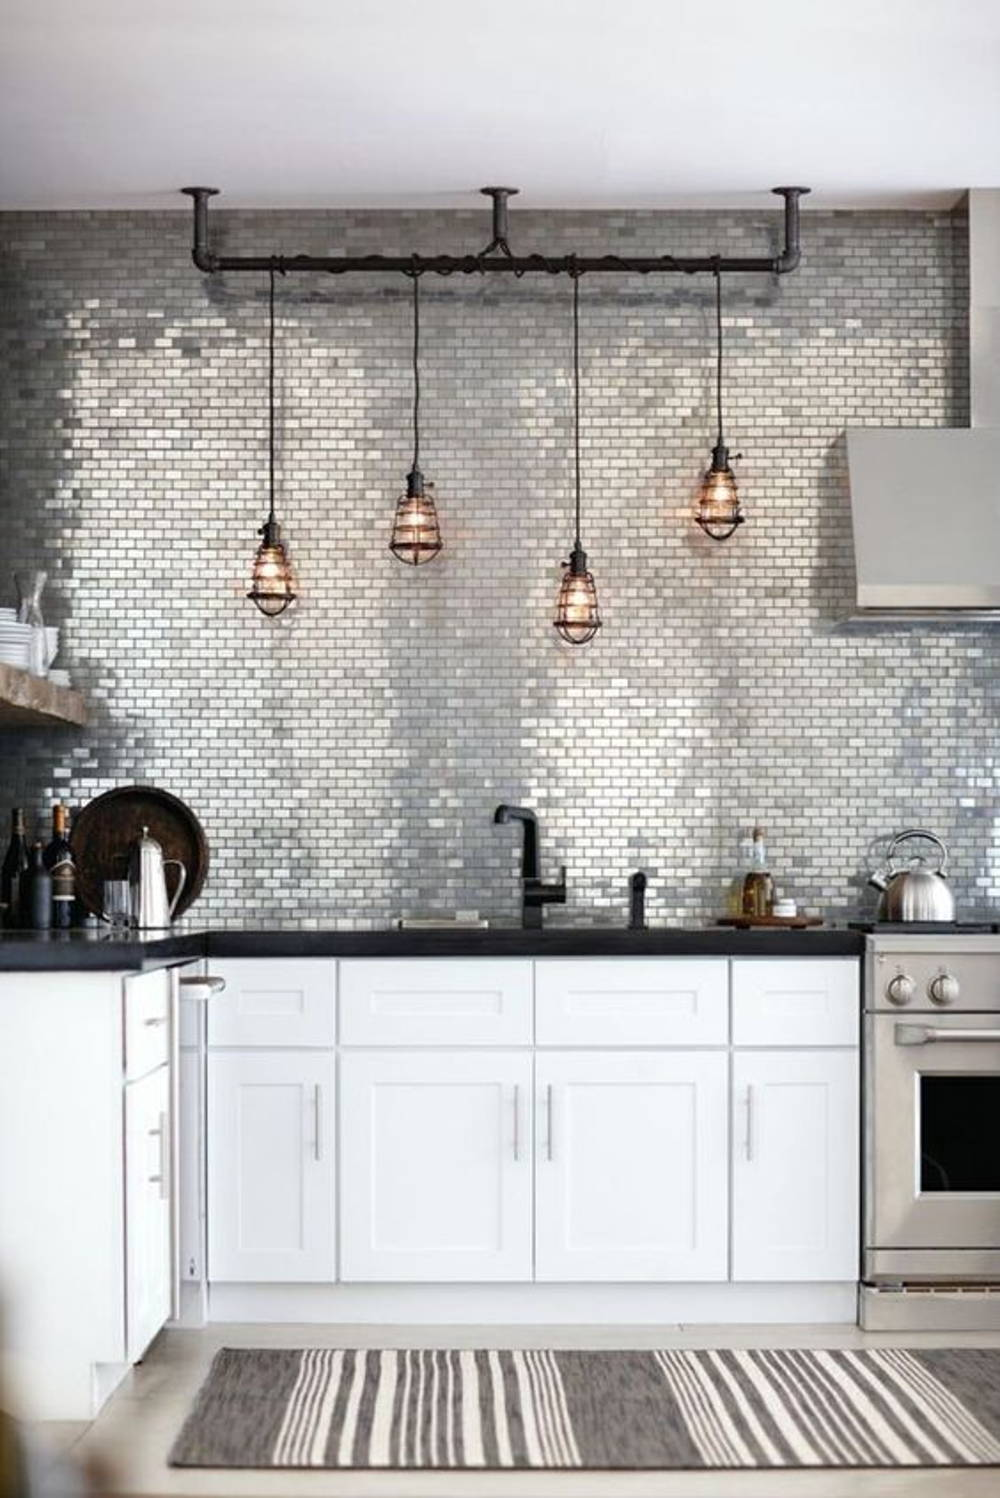 Reflective backsplash